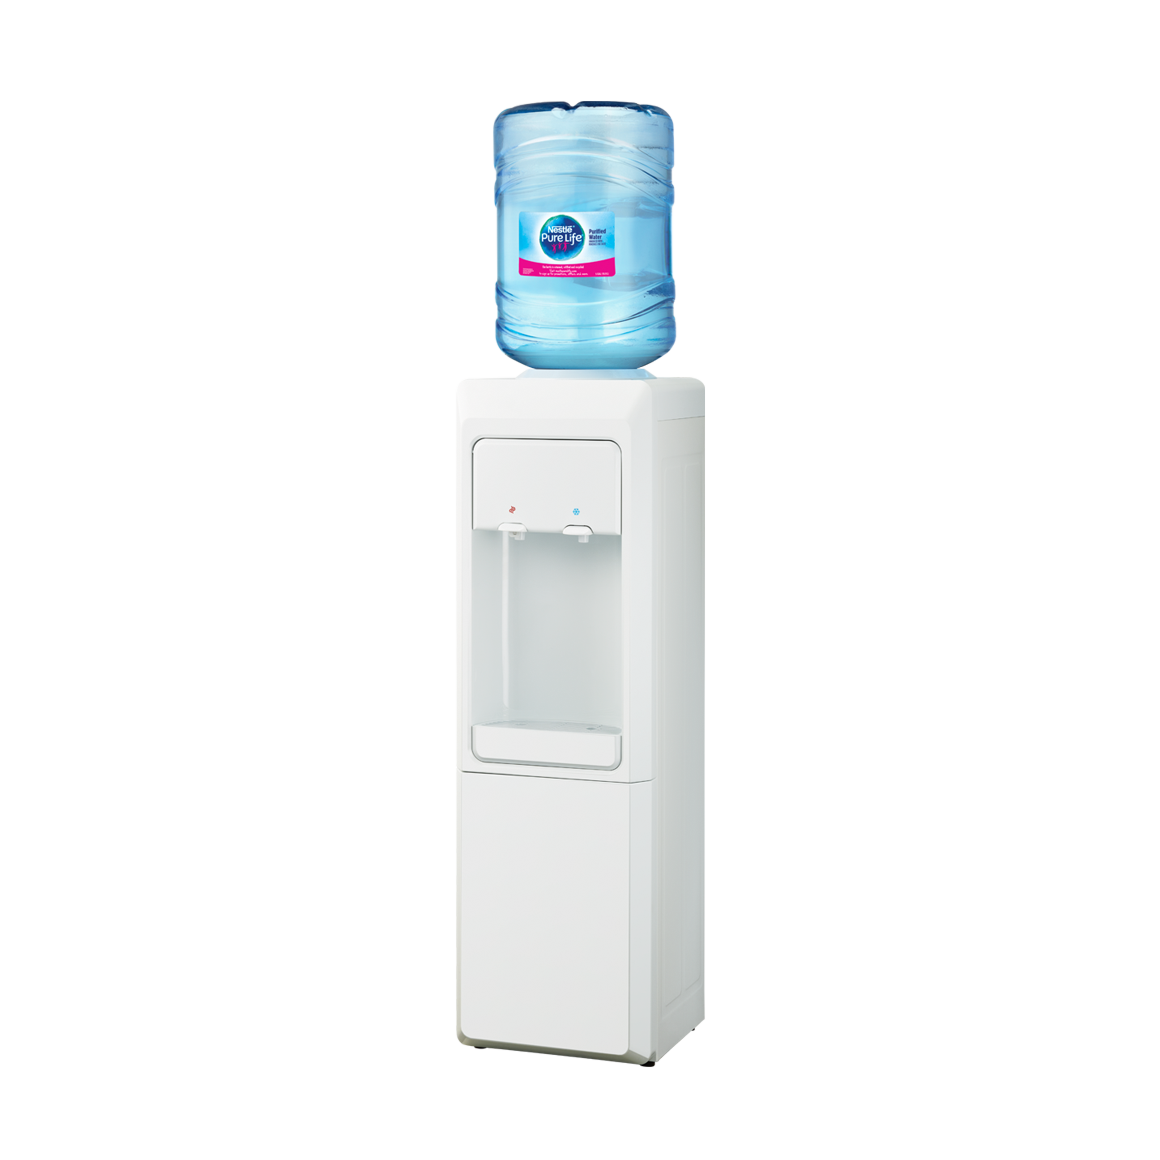 Accessor Series Hot & Cold Water Dispenser White (Buy Only) Image1